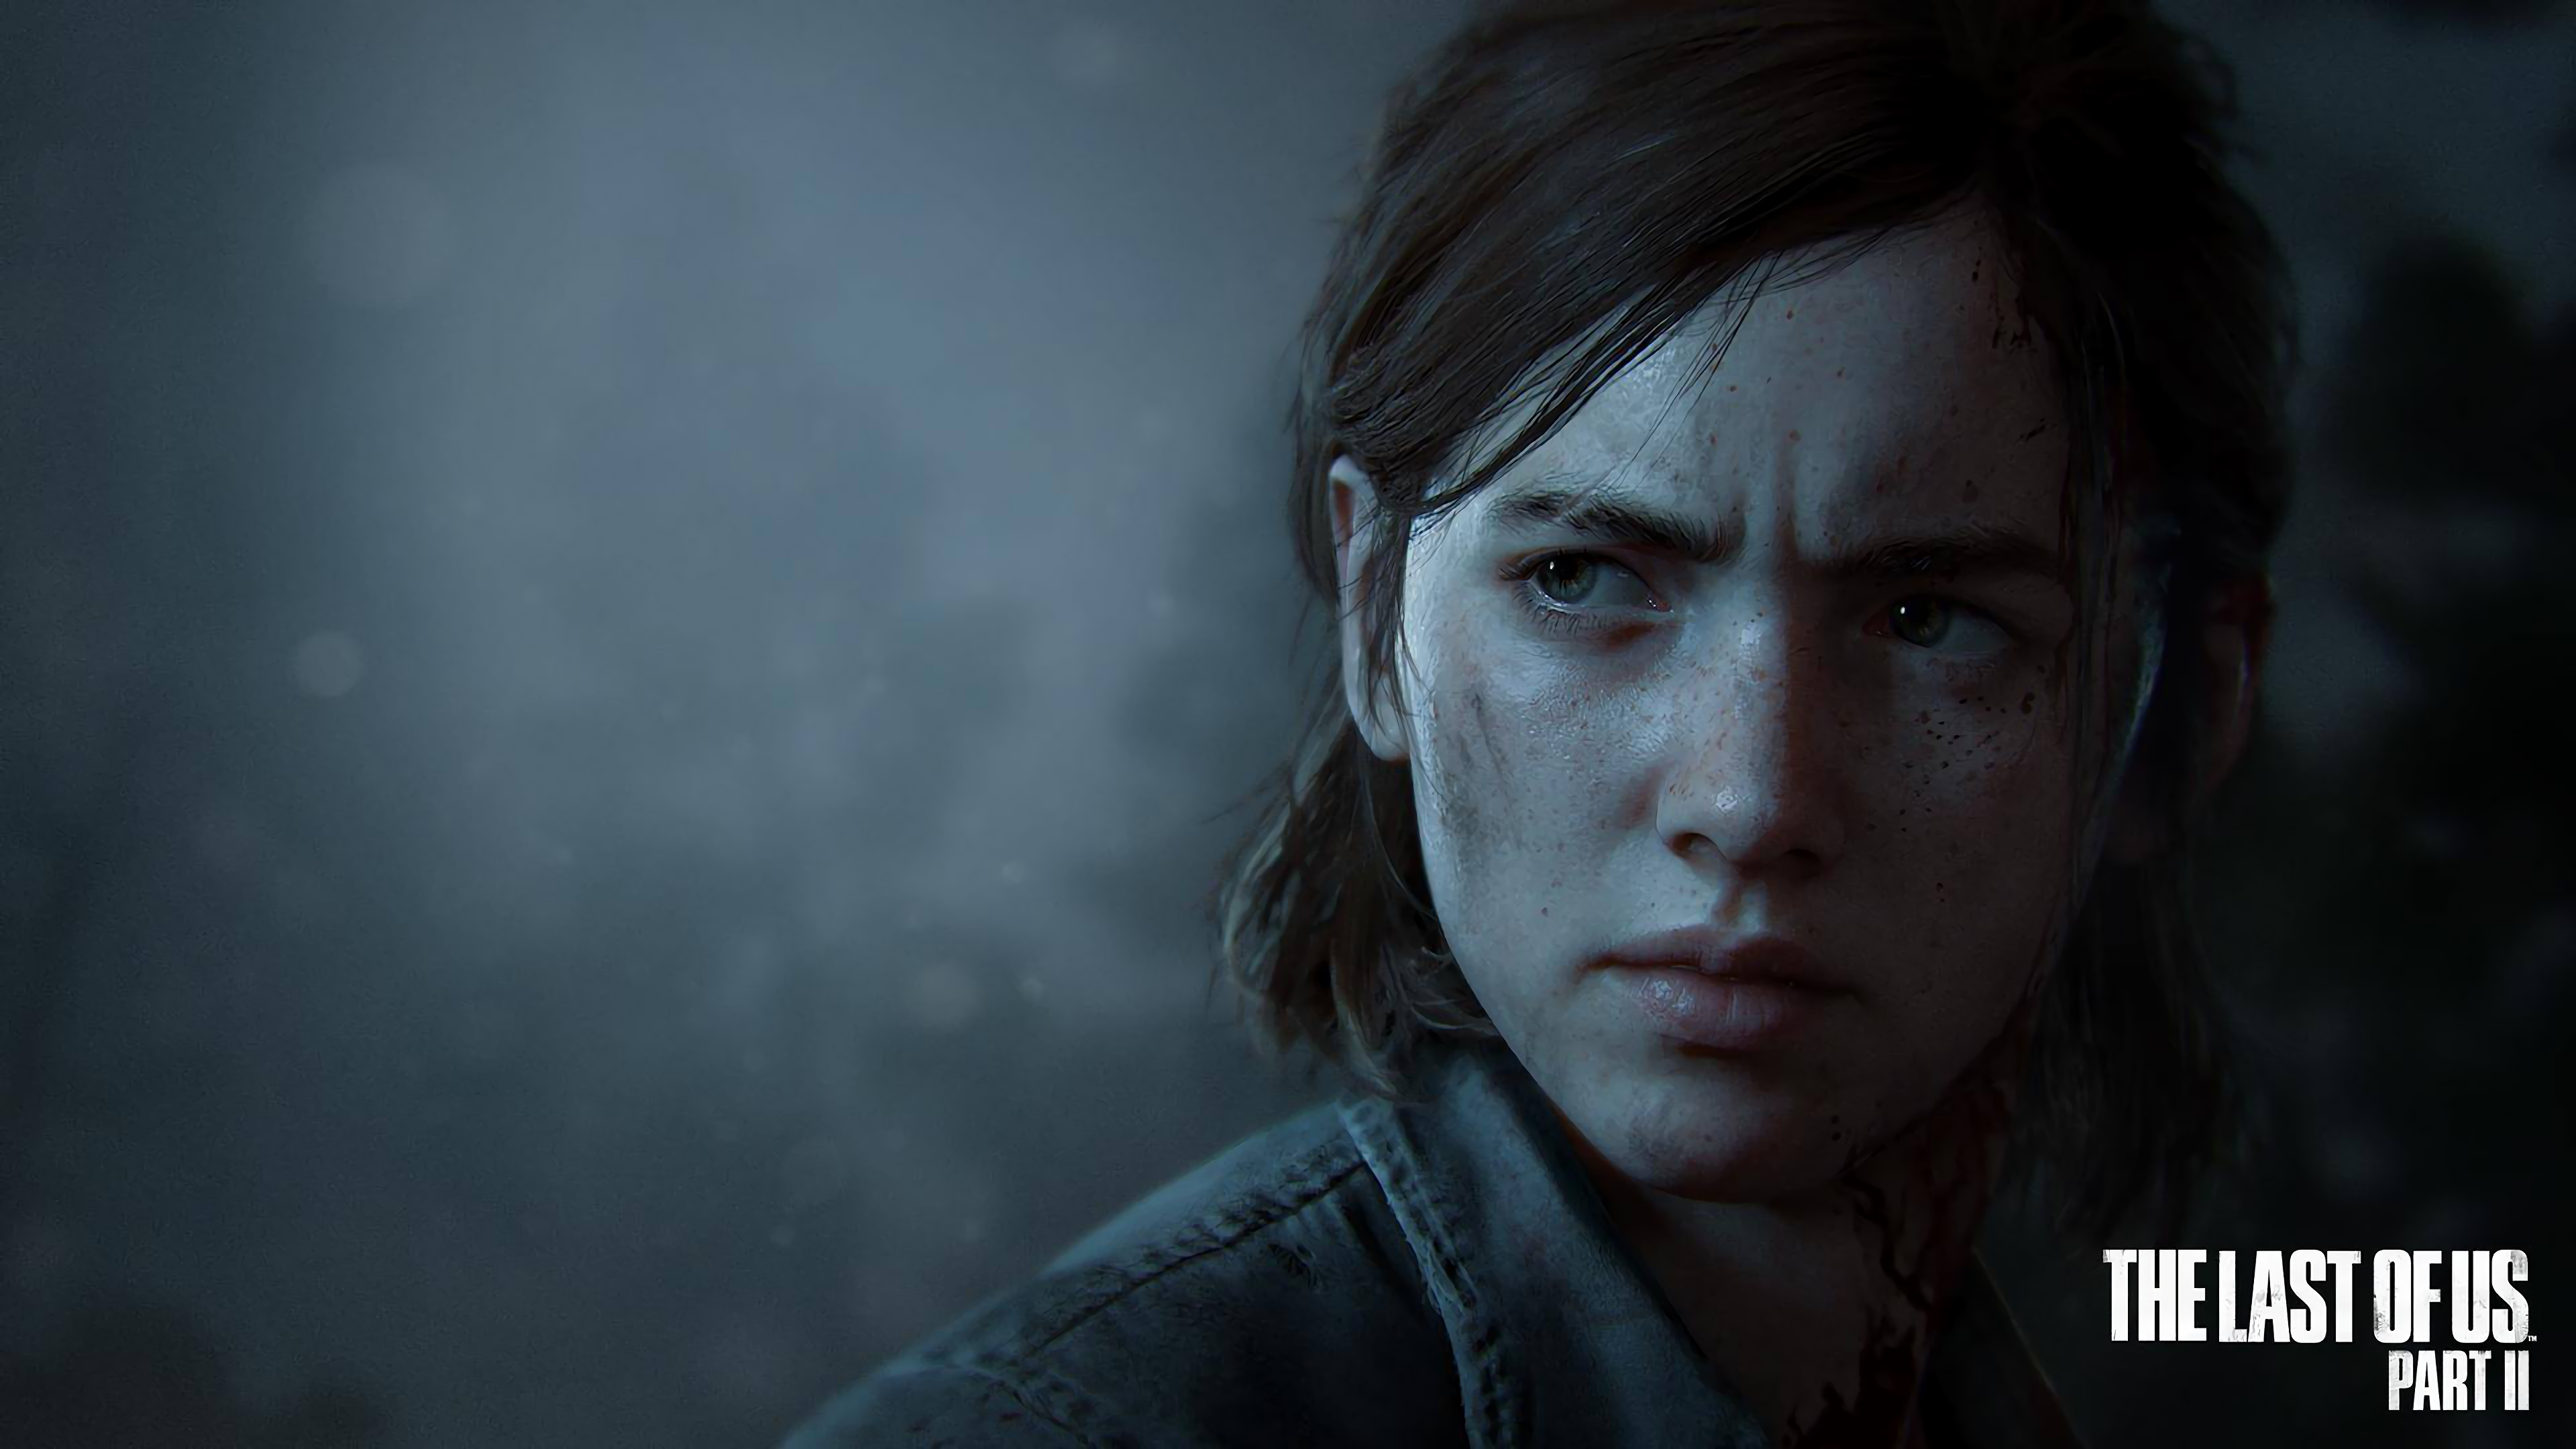 39] The Last Of Us Part 2 Wallpapers on WallpaperSafari 3840x2160